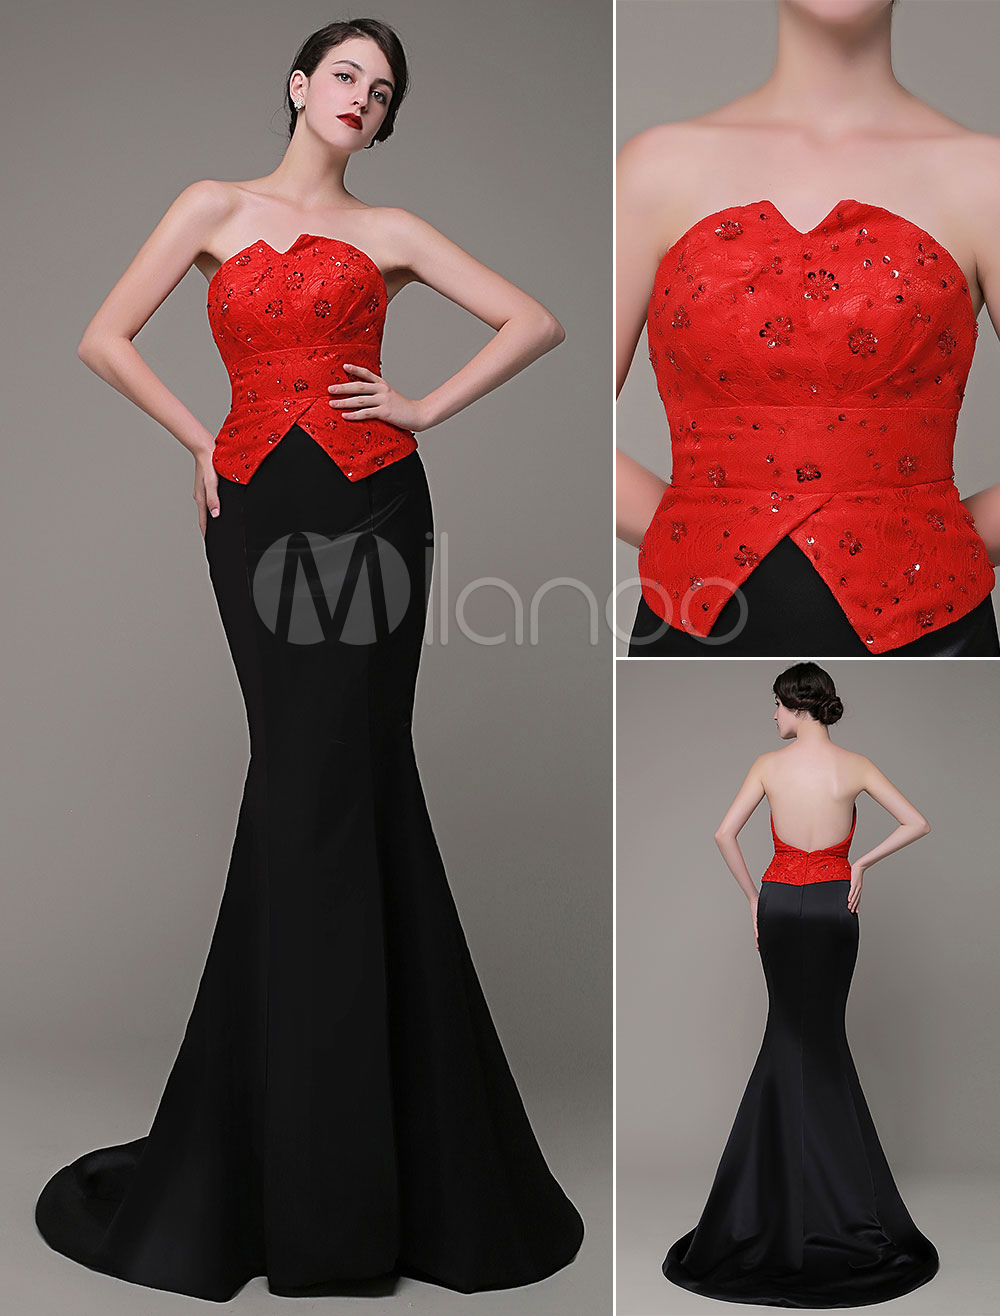 Buy Mermaid Evening Dress Strapless Lace Beading Pleated Chaple Train Prom Dress Milanoo for $136.79 in Milanoo store